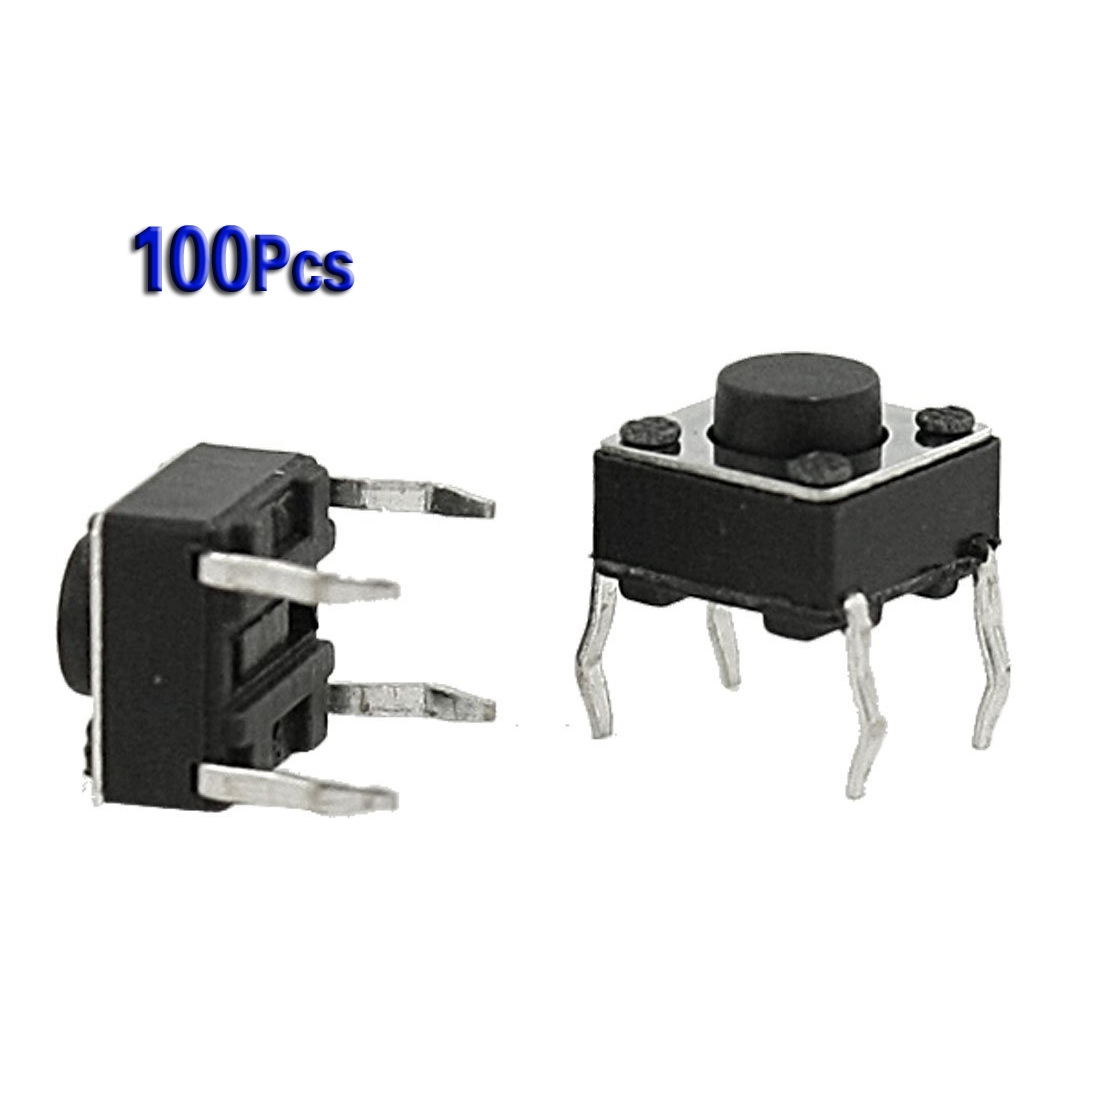 100 Pcs 6x6x4.5mm Panel PCB Momentary Tactile Tact Push Button Switch 4 Pin DIP